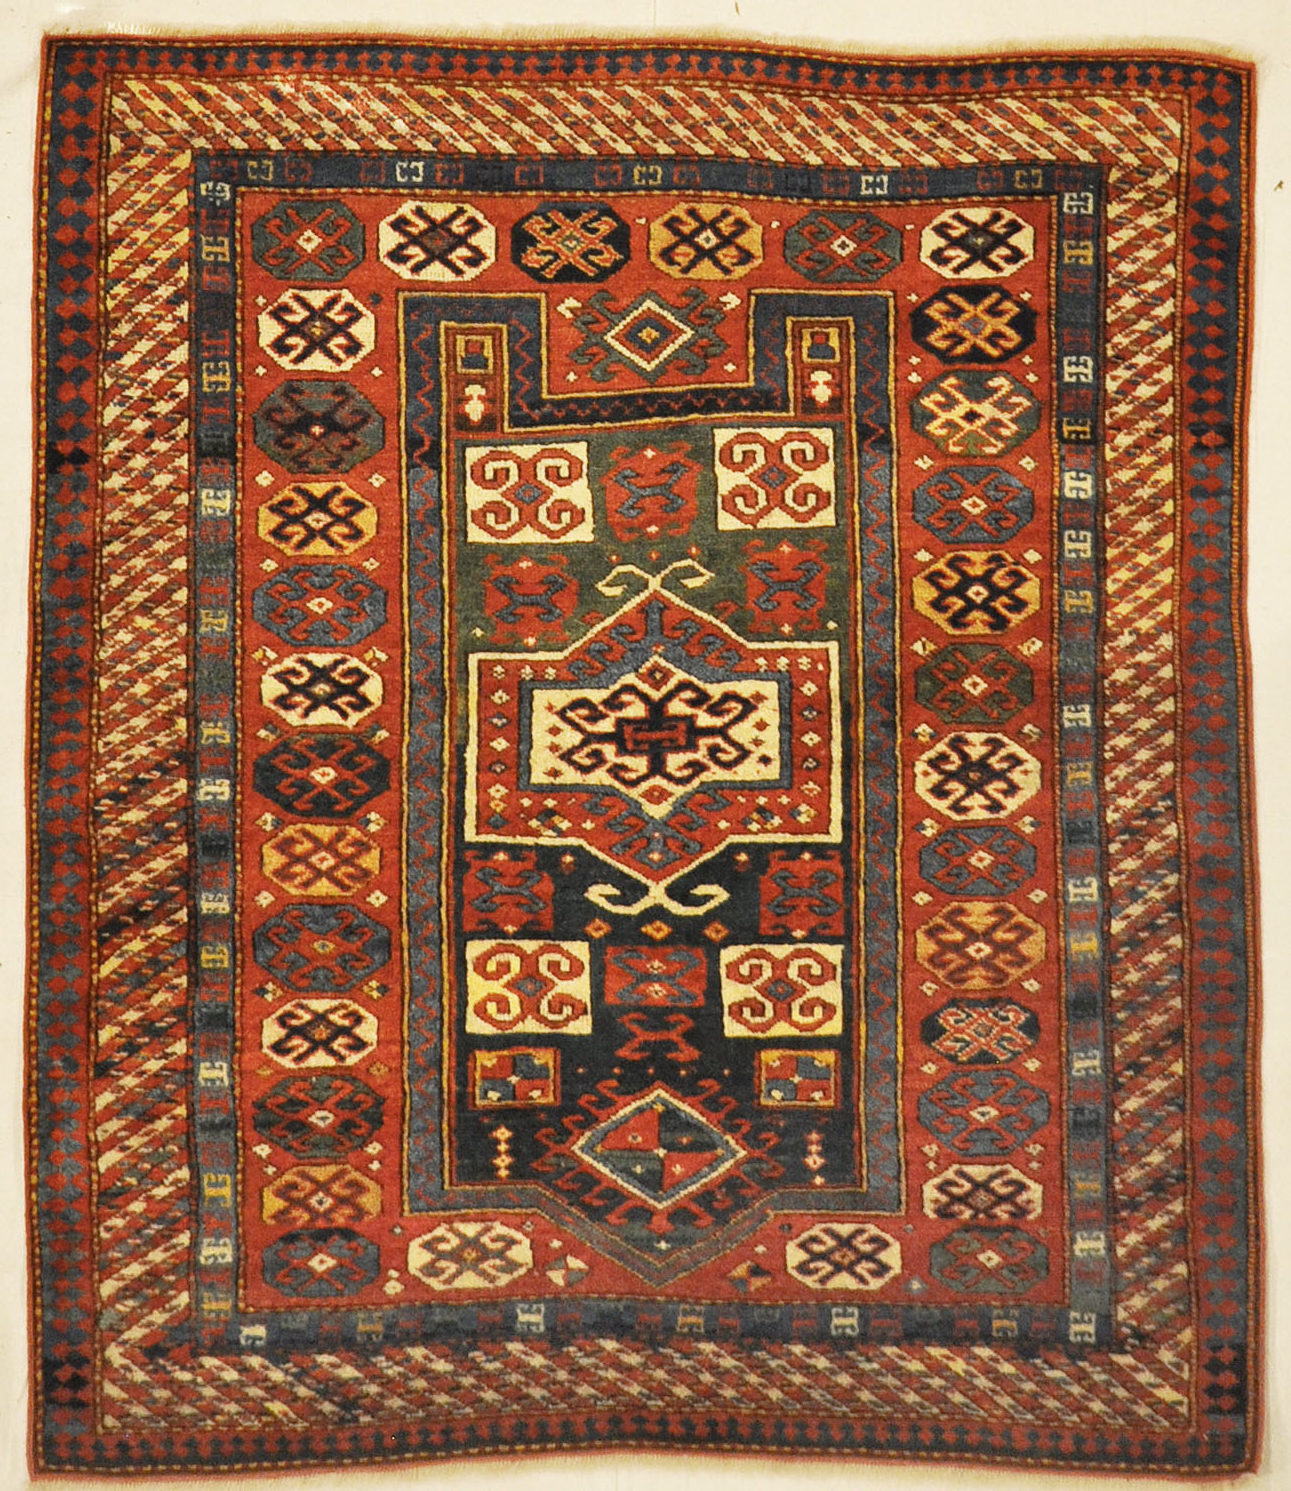 Kazak Prayer Rug santa barbara design center-1